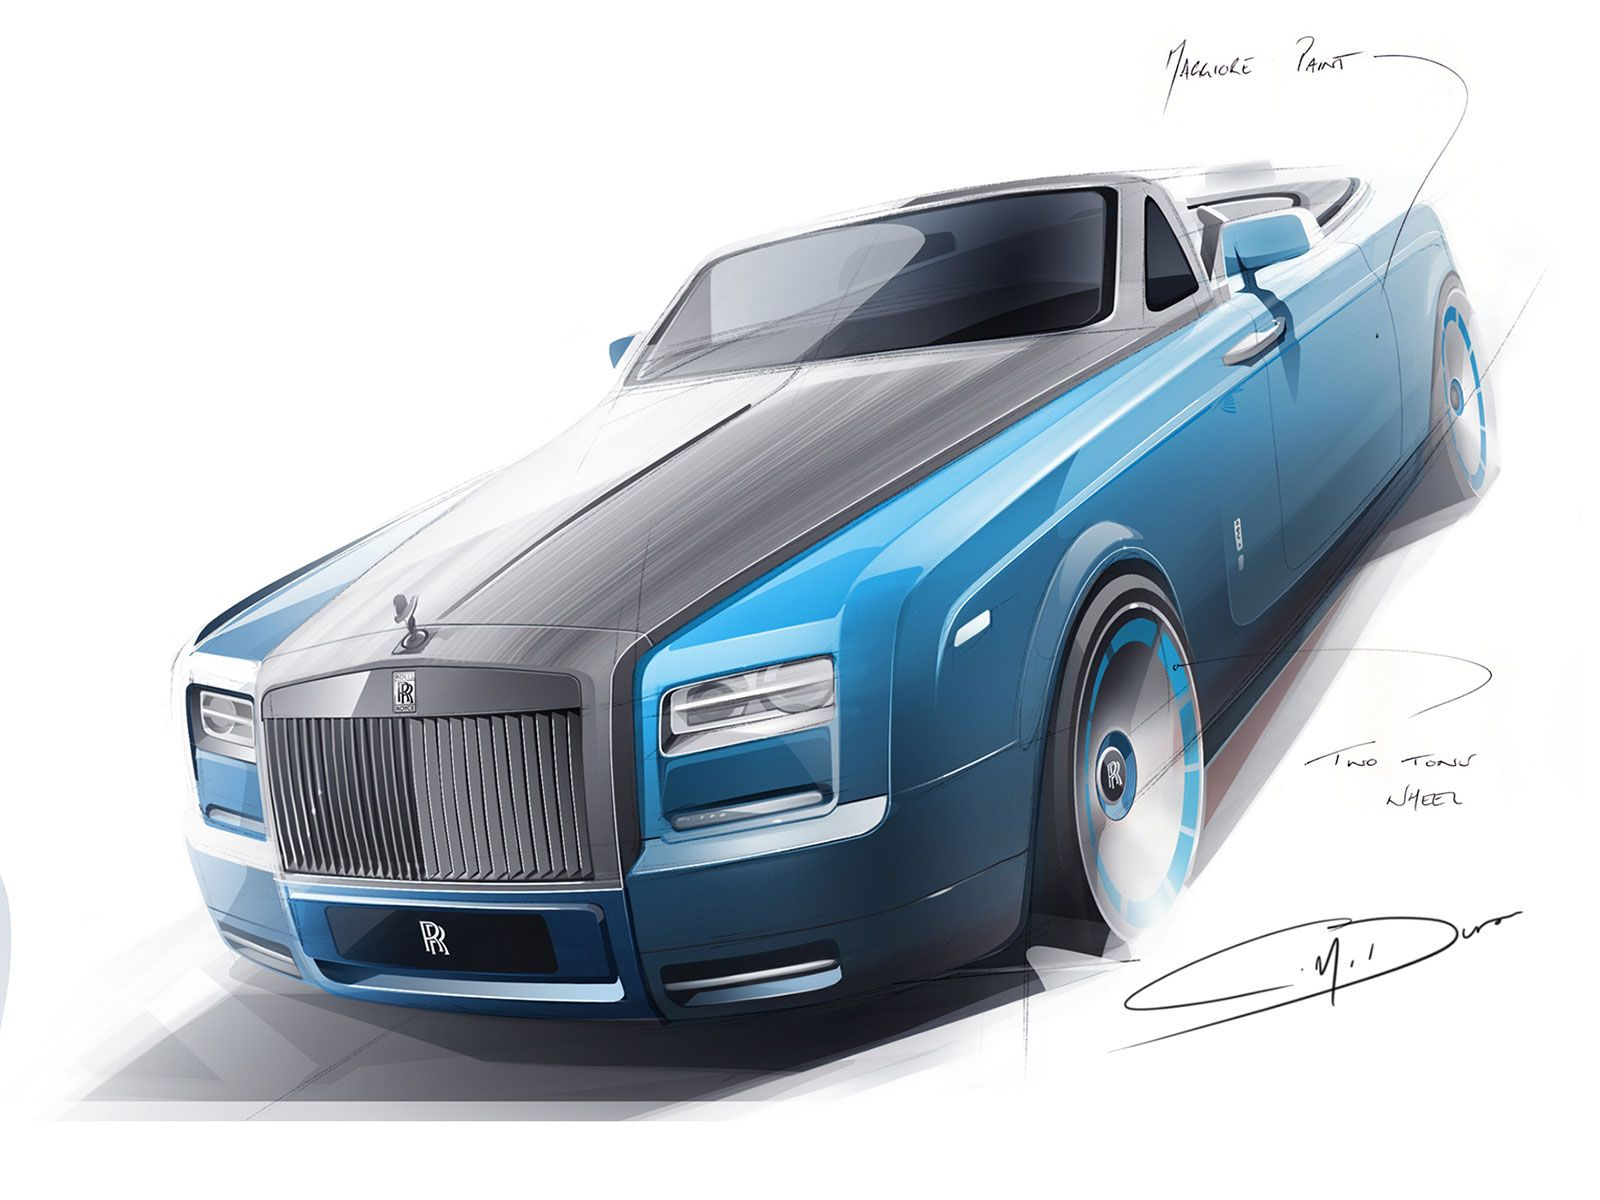 Rolls royce bespoke waterspeed collection design sketch